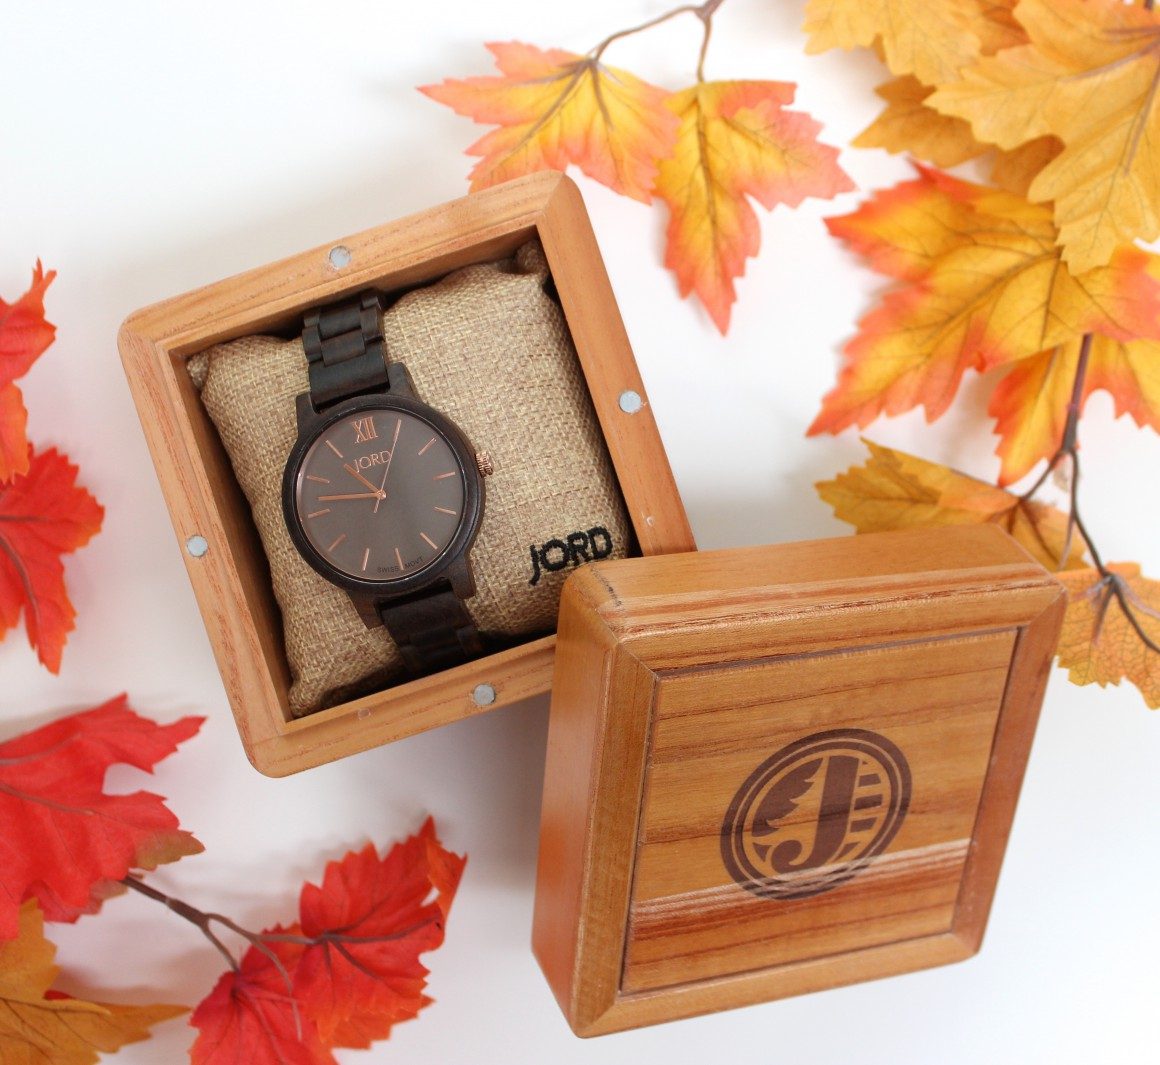 Jord Woodwatches JustKVN menswear and lifestyle blog